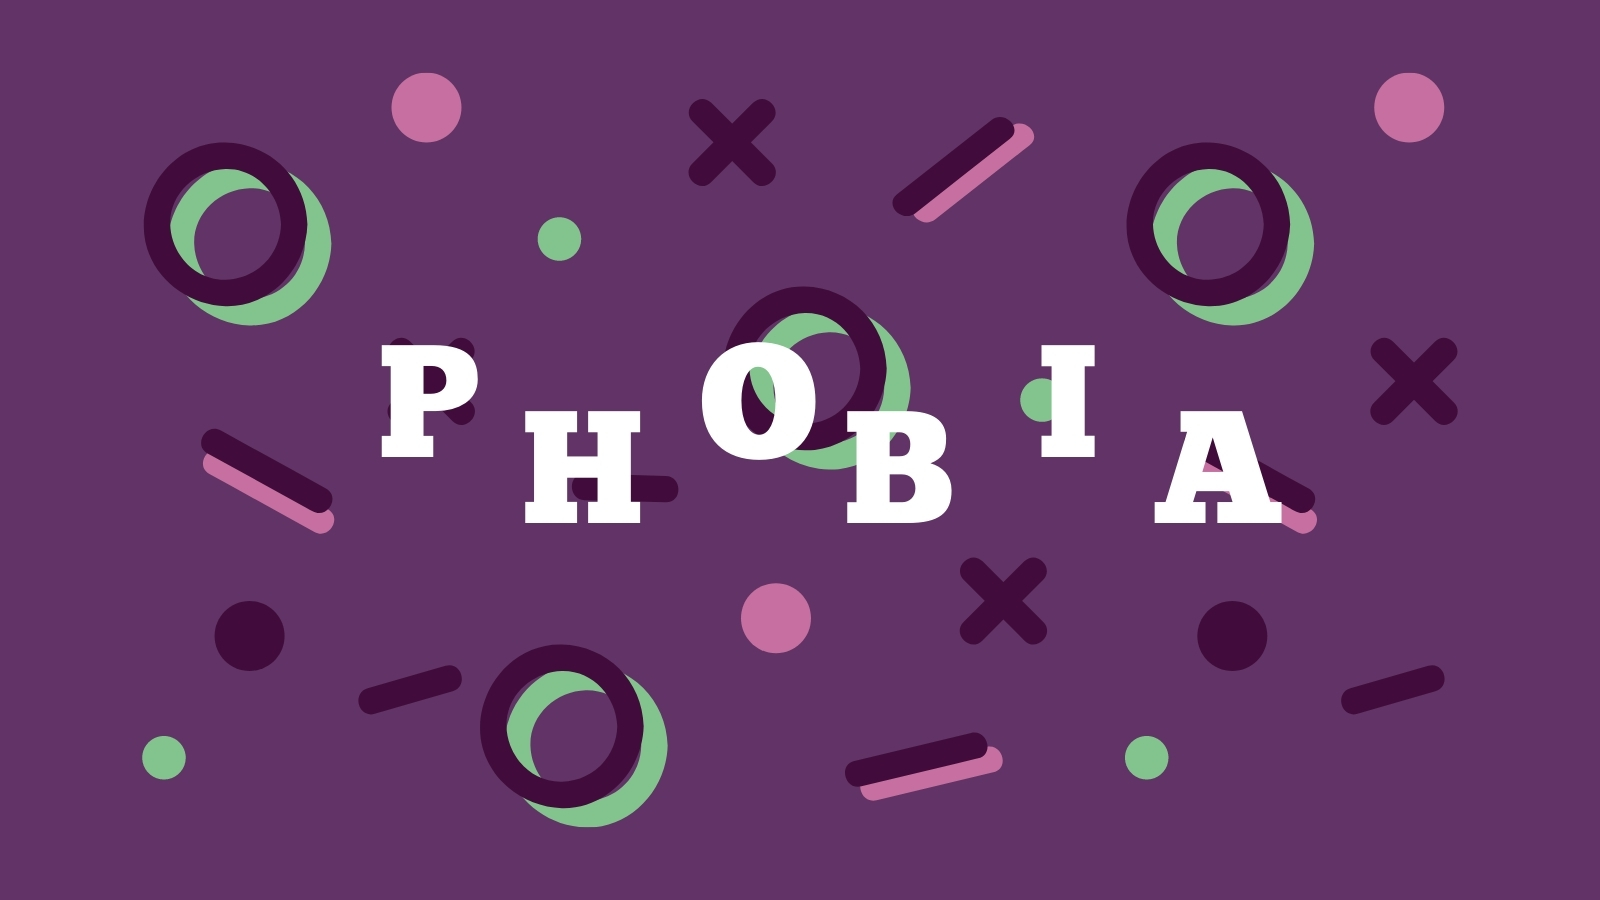 Phobia - Writing Prompt